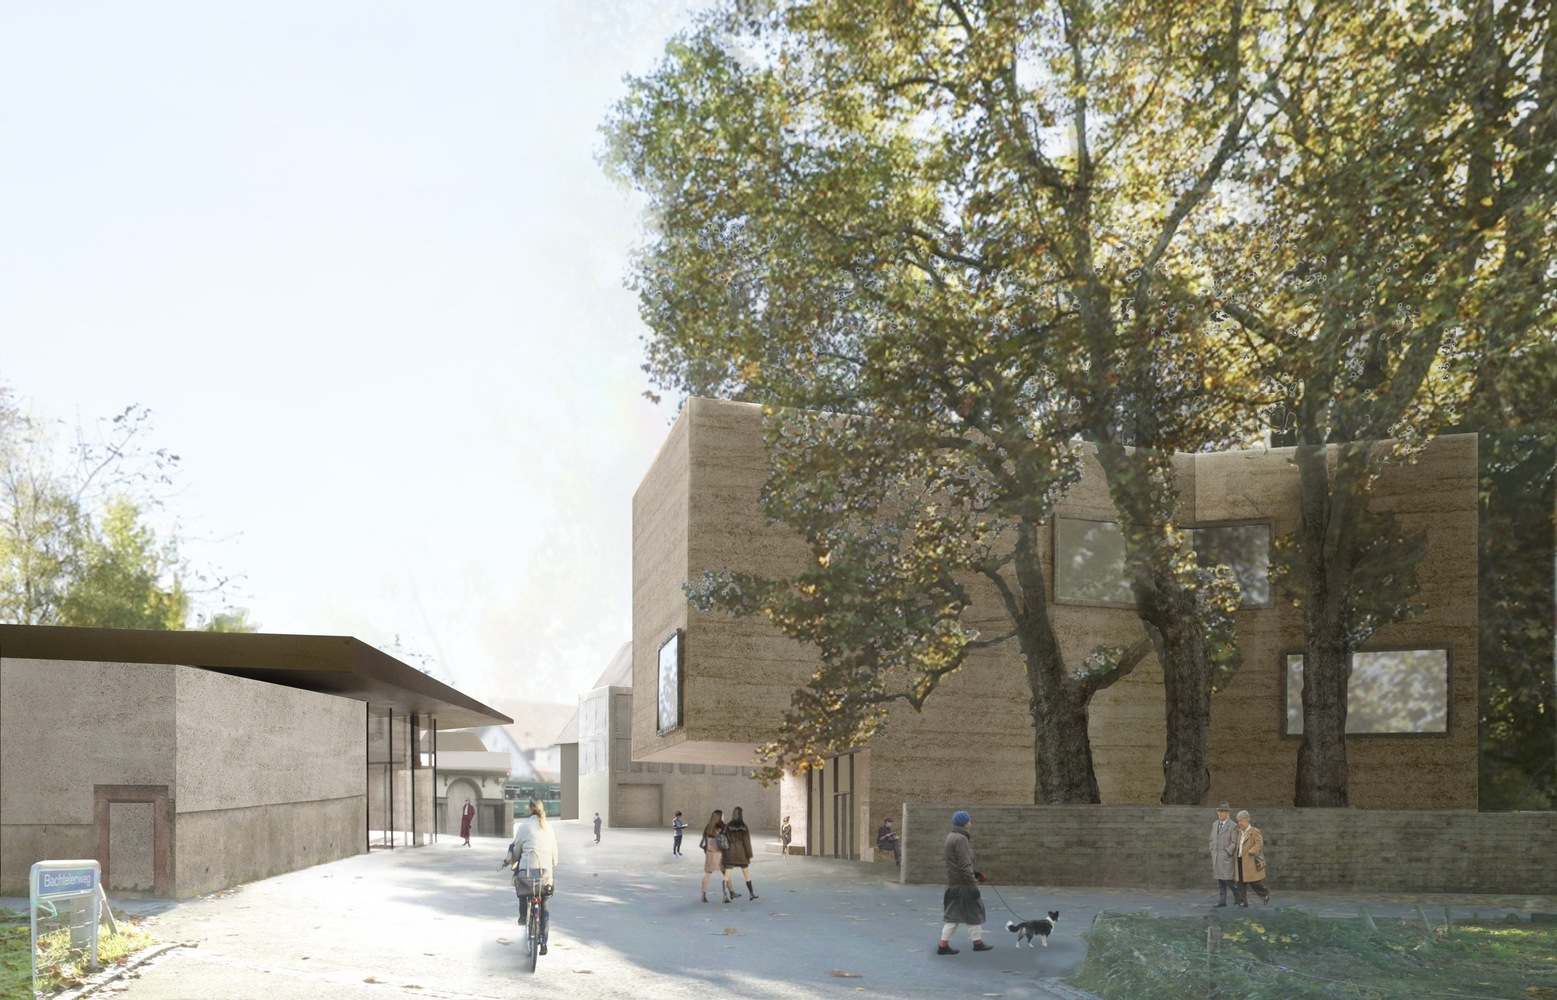 Atelier Peter Zumthor to present the foundation Beyeler's extention project